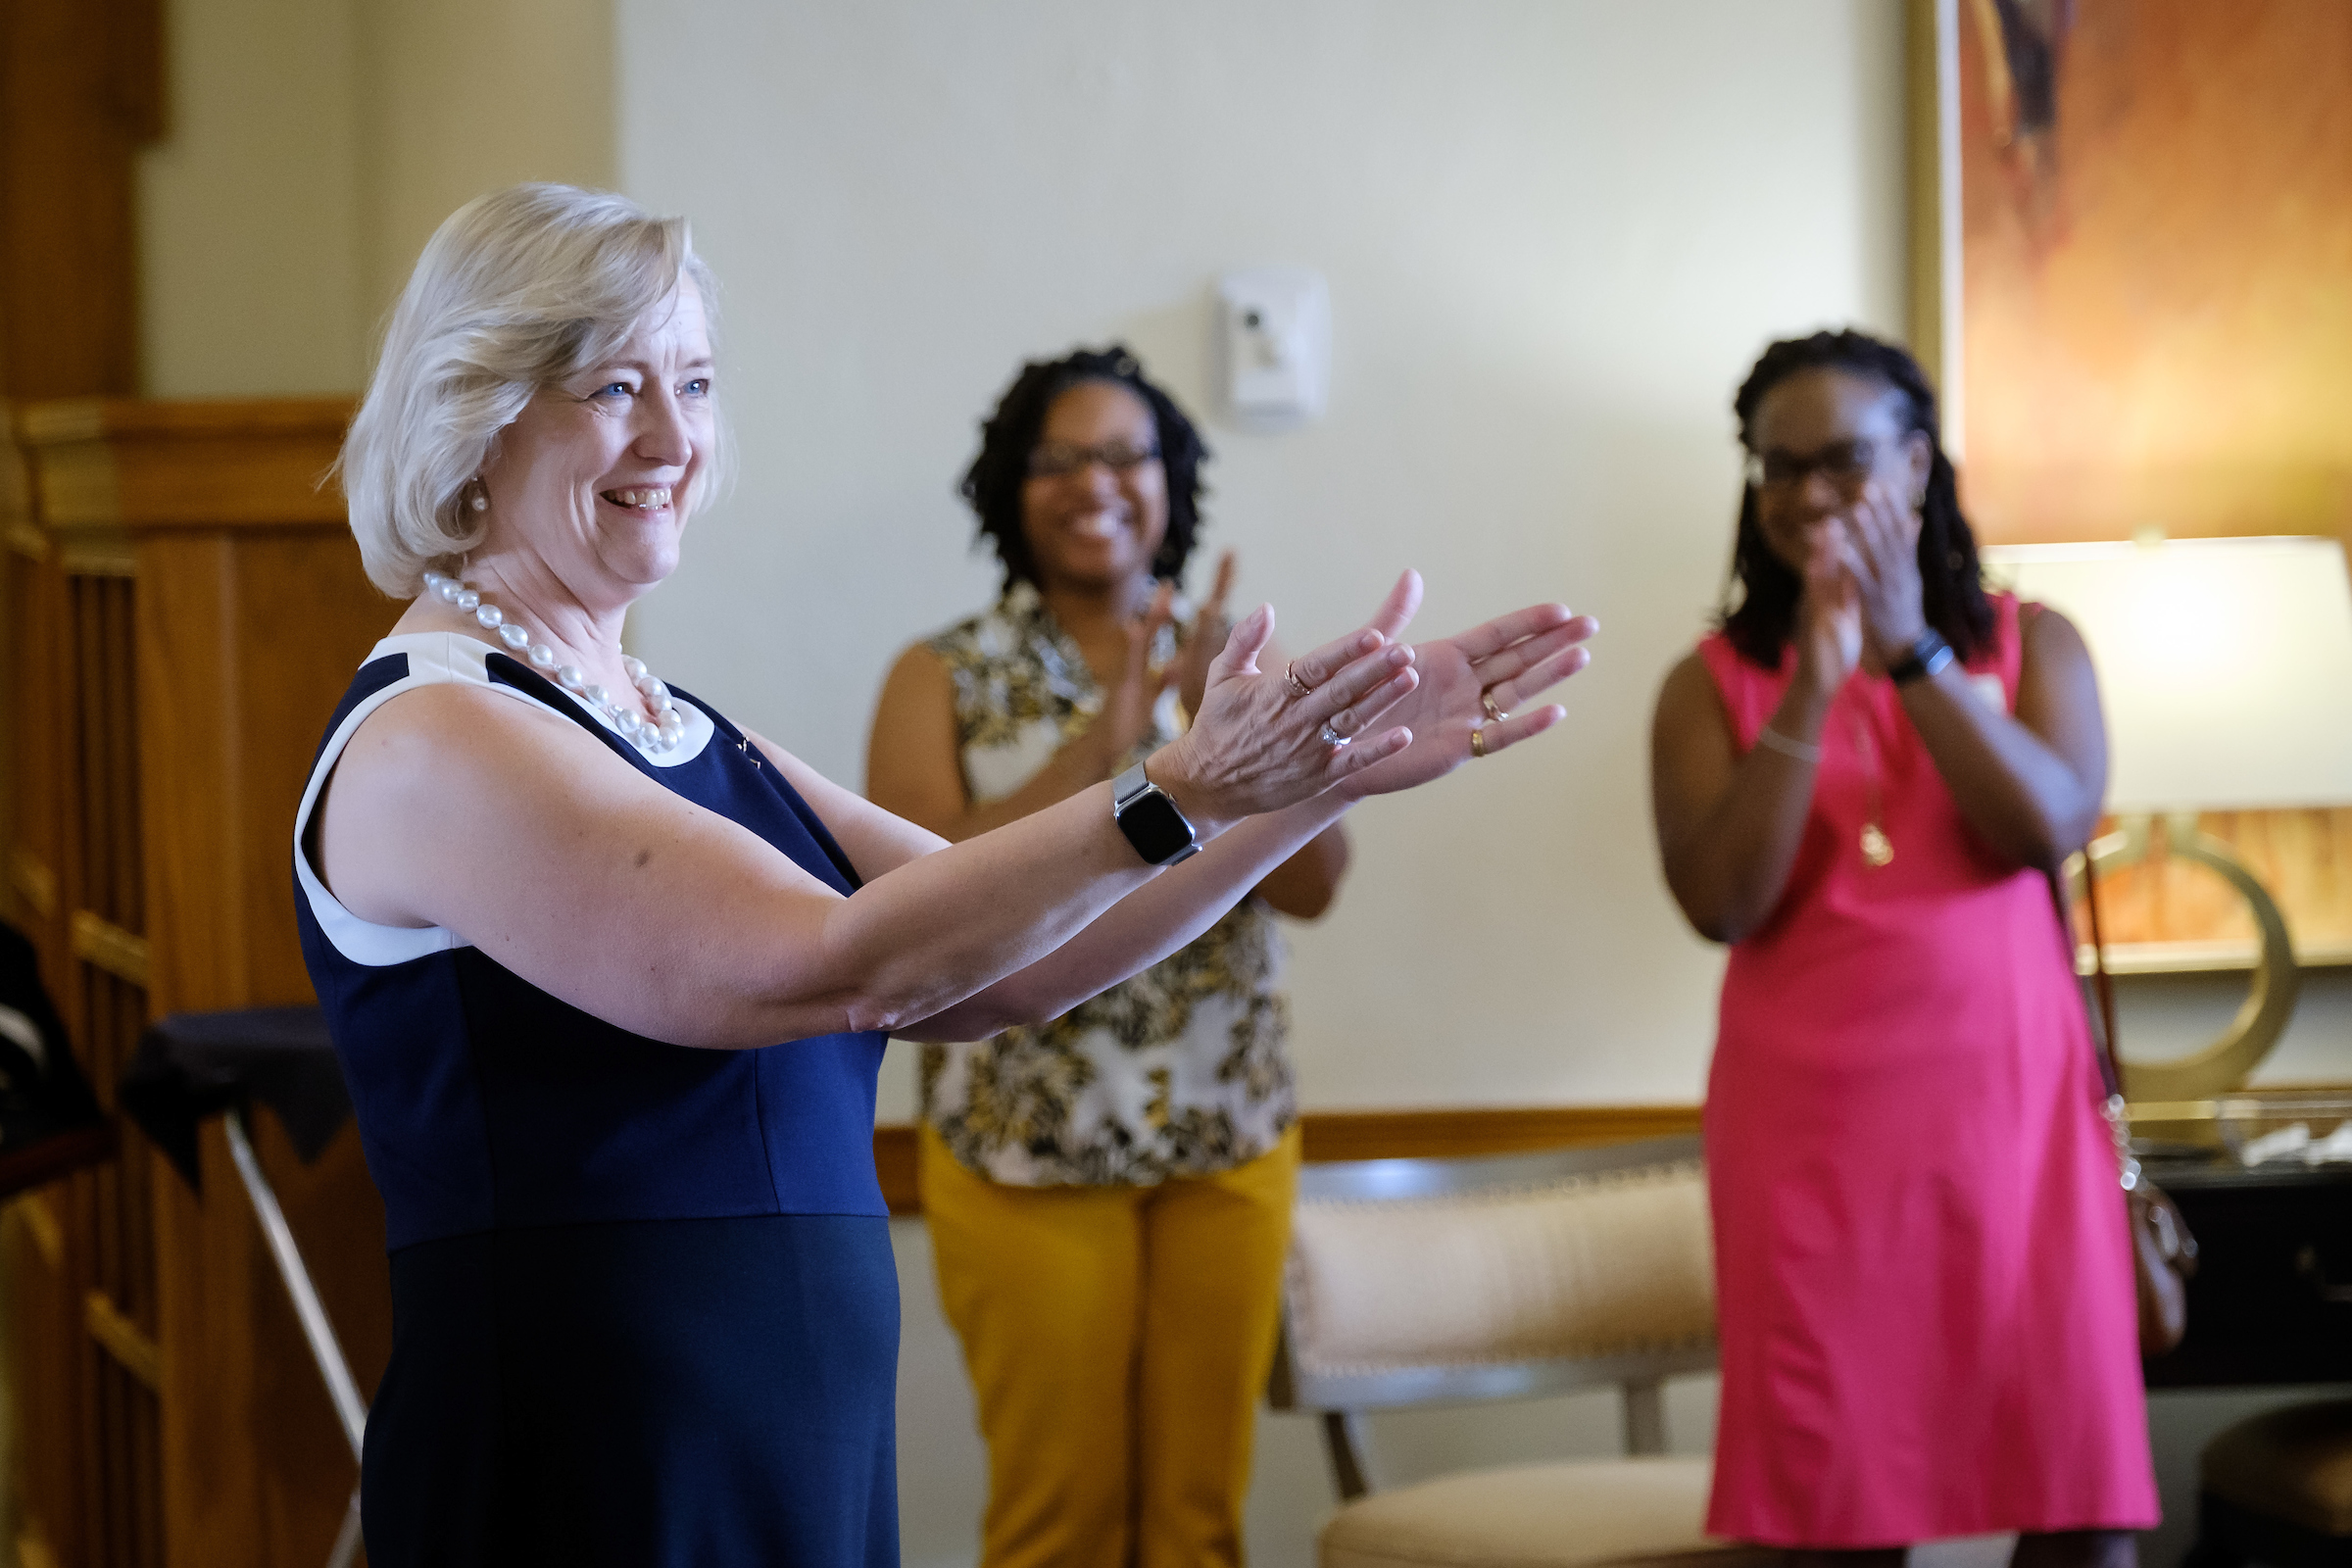 President Susan Wente gestures will speaking to a group of administrators.